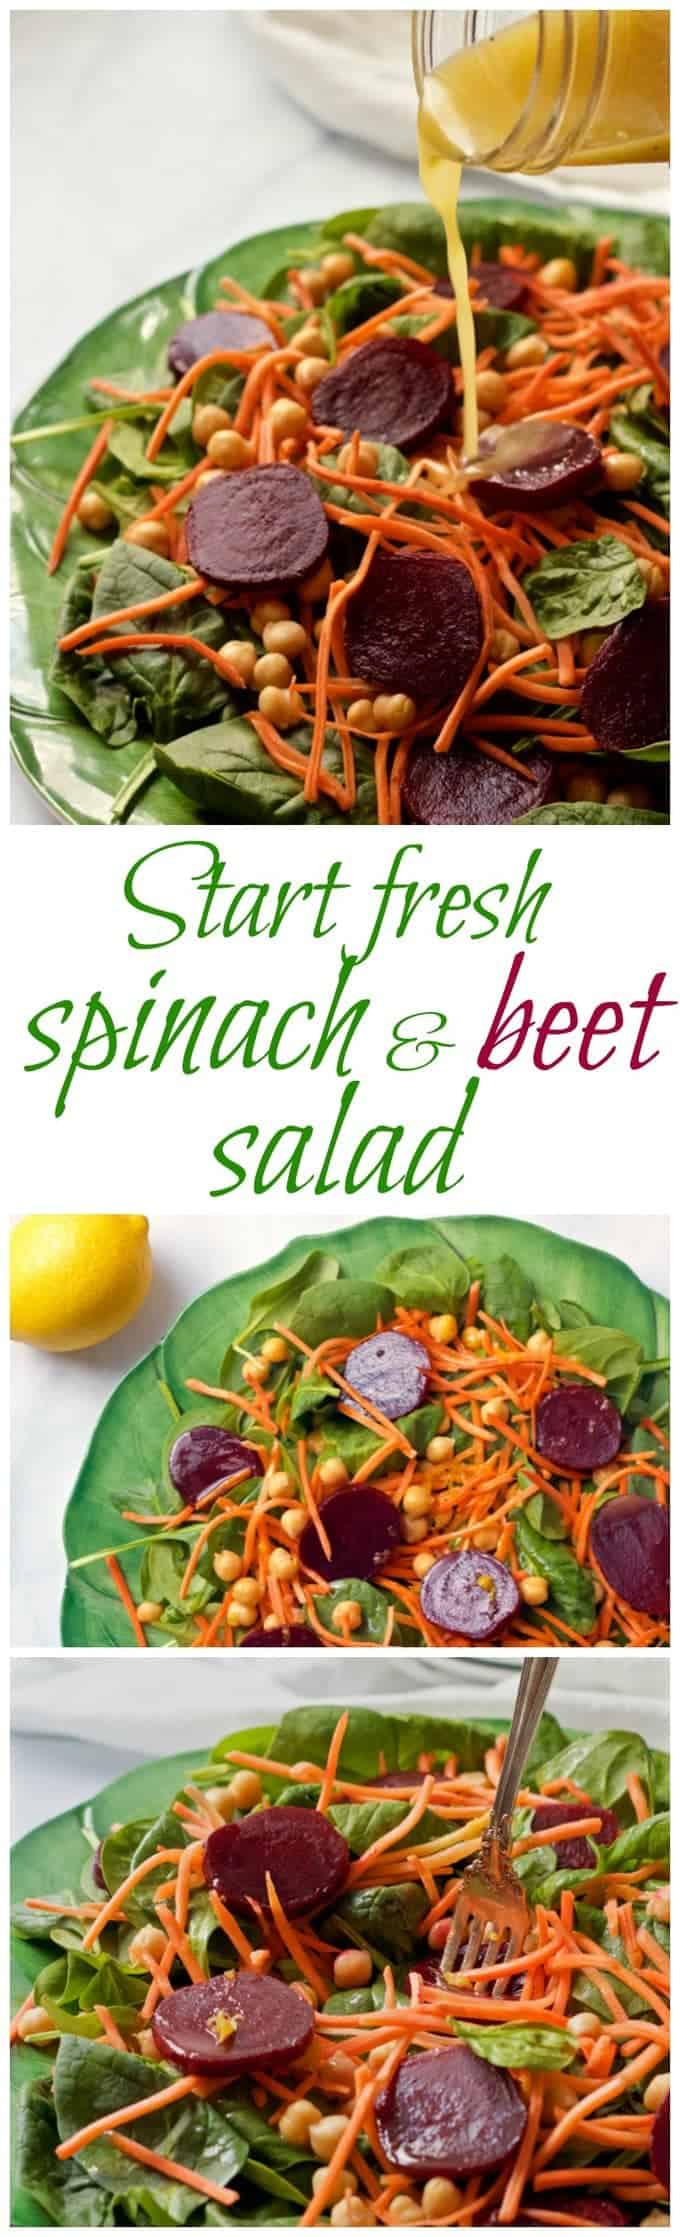 A fast and healthy winter salad of spinach, beets, chick peas and carrots, tossed in a lemon-maple vinaigrette!